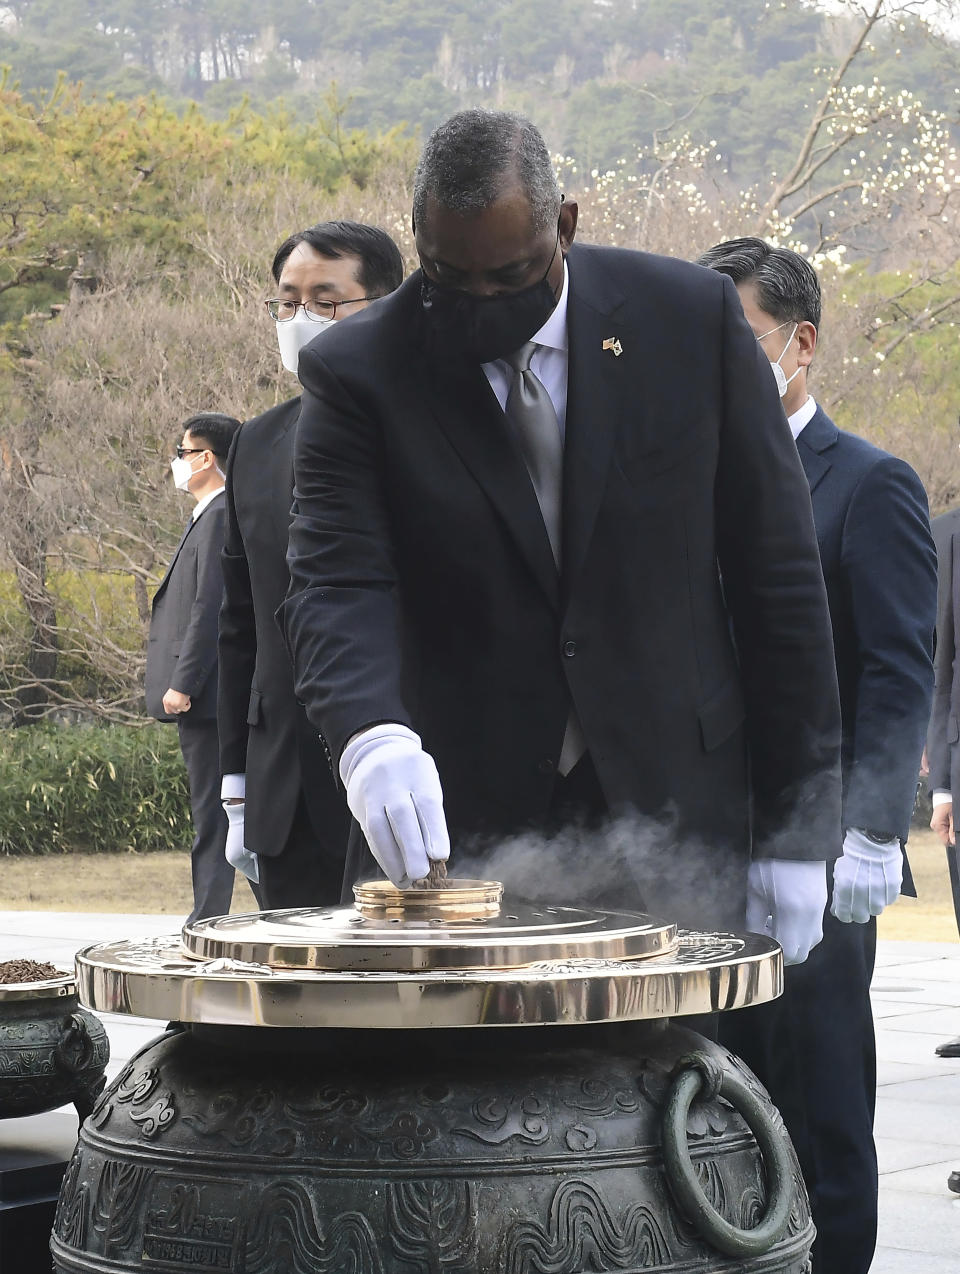 U.S. Defense Secretary Lloyd Austin burns incense to pay tribute to the victims of the Korean War during his visit to the National Cemetery Thursday, March 18, 2021, in Seoul, South Korea. (Kim Min-hee/Pool Photo via AP)